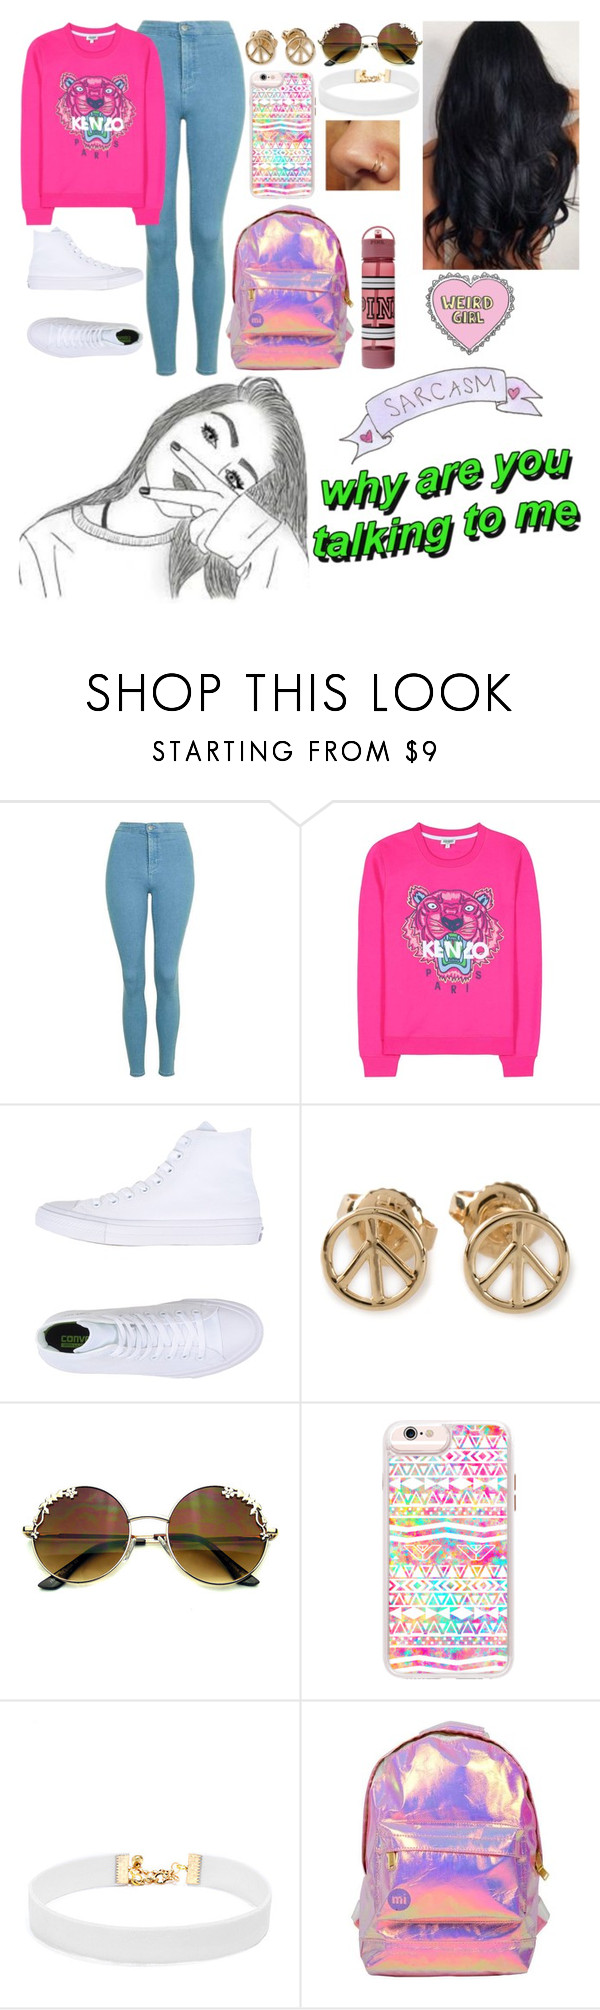 """weird girl"" by ms-prettymama ❤ liked on Polyvore featuring Topshop, Kenzo, Converse, Aurélie Bidermann, Casetify, Vanessa Mooney and Miss Selfridge"